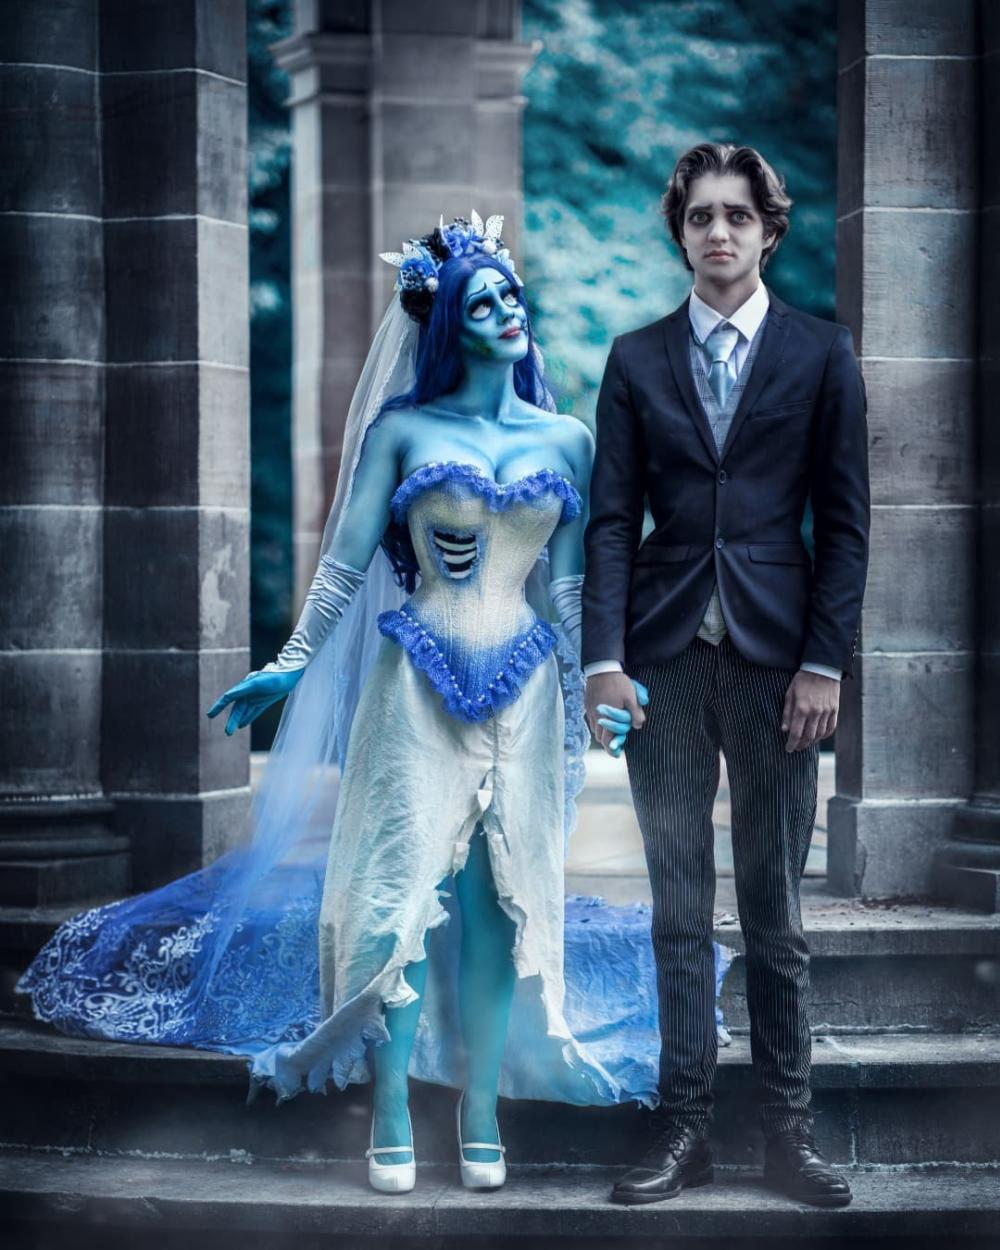 Corpse bride and husband best halloween costumes